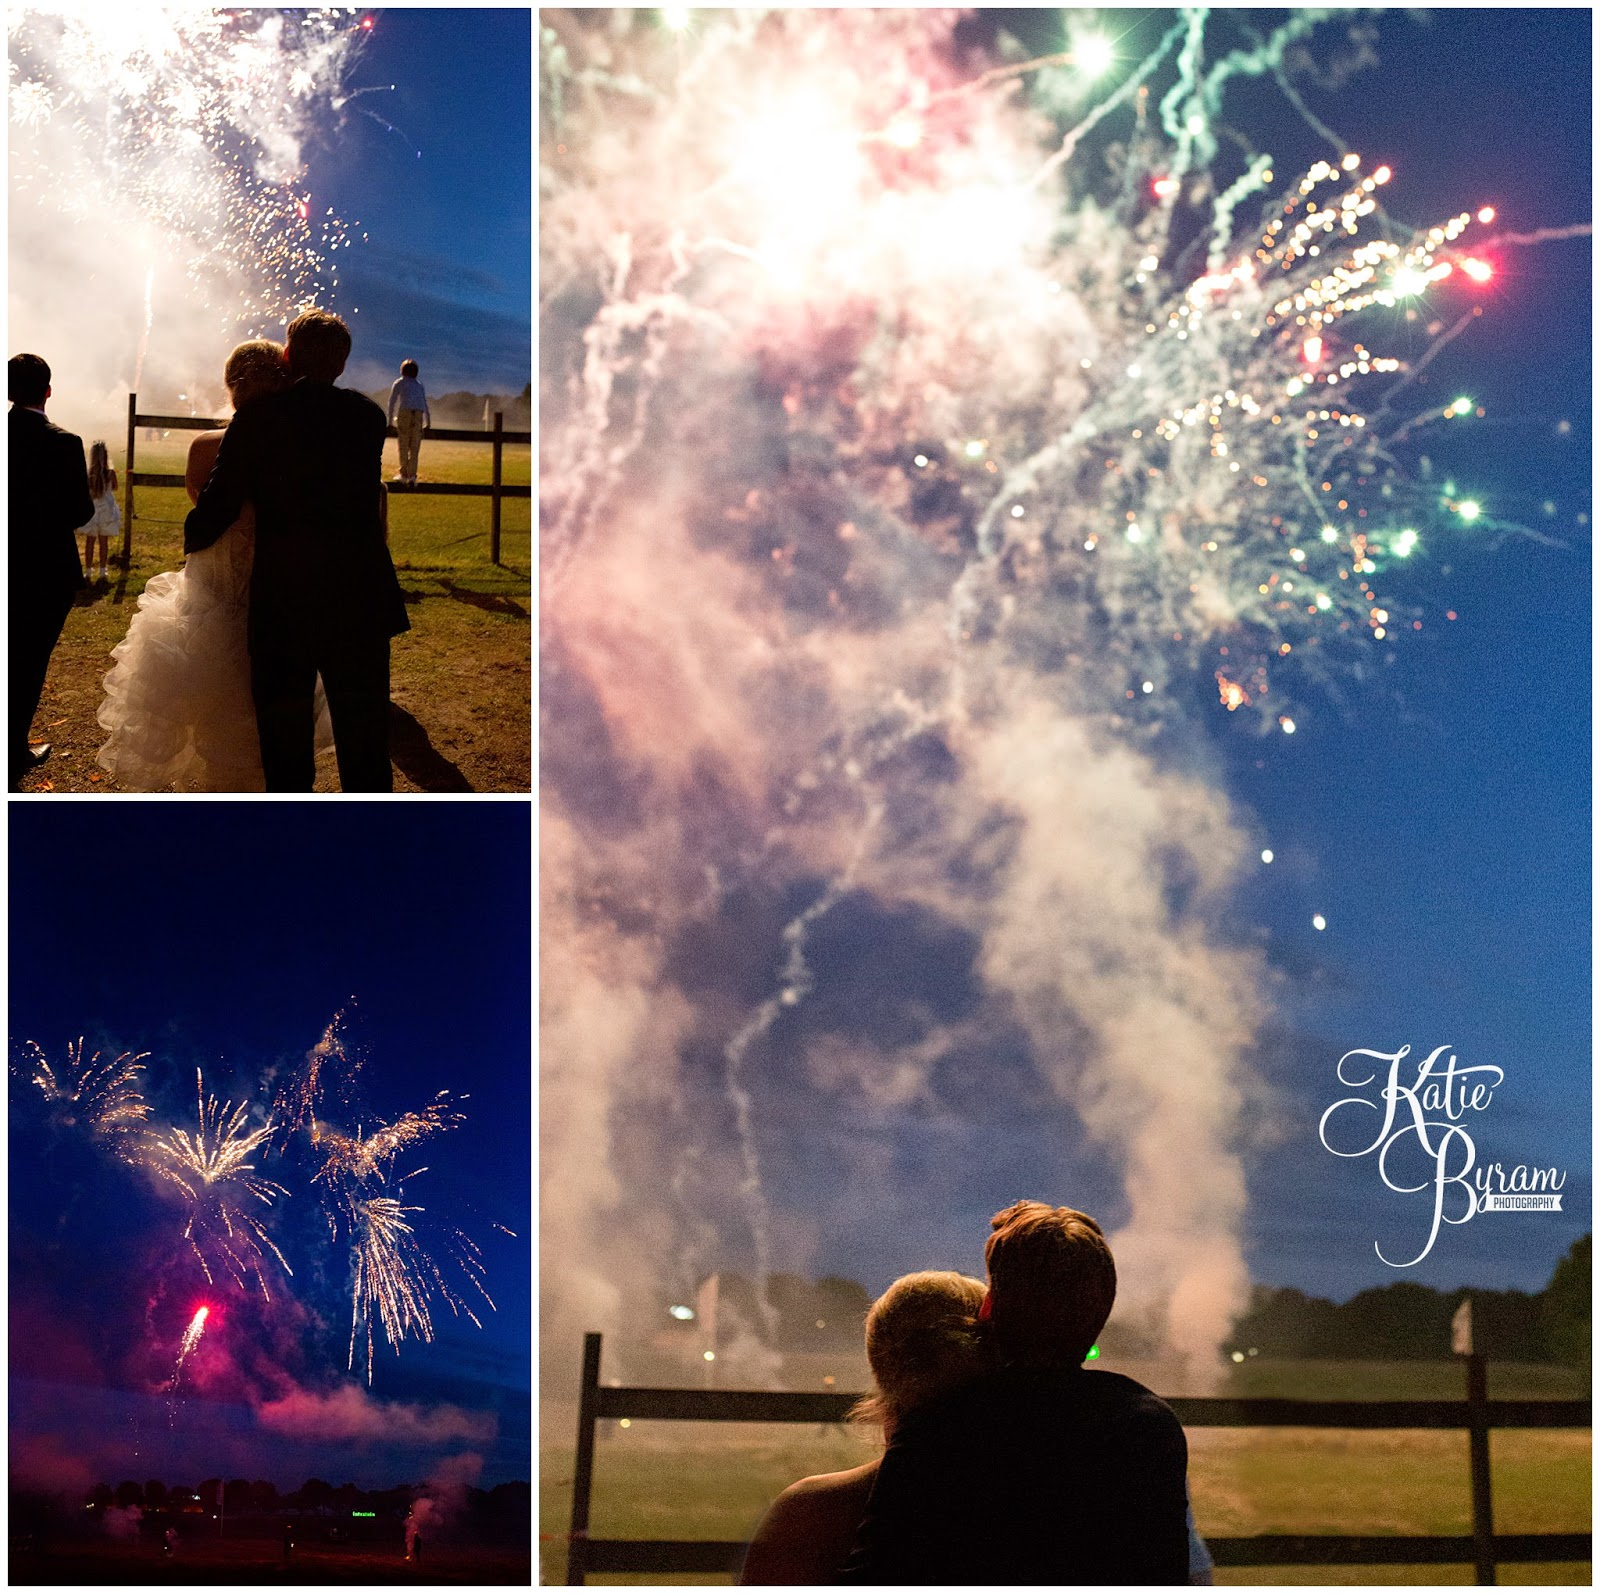 fireworks wedding, katie byram photography, dutch wedding photographer, winschoten wedding, katie byram photography, dutch wedding photographer, winschoten wedding, netherlands wedding, destination wedding photographer, netherlands wedding, destination wedding photographer, holland wedding, papa di grazzi